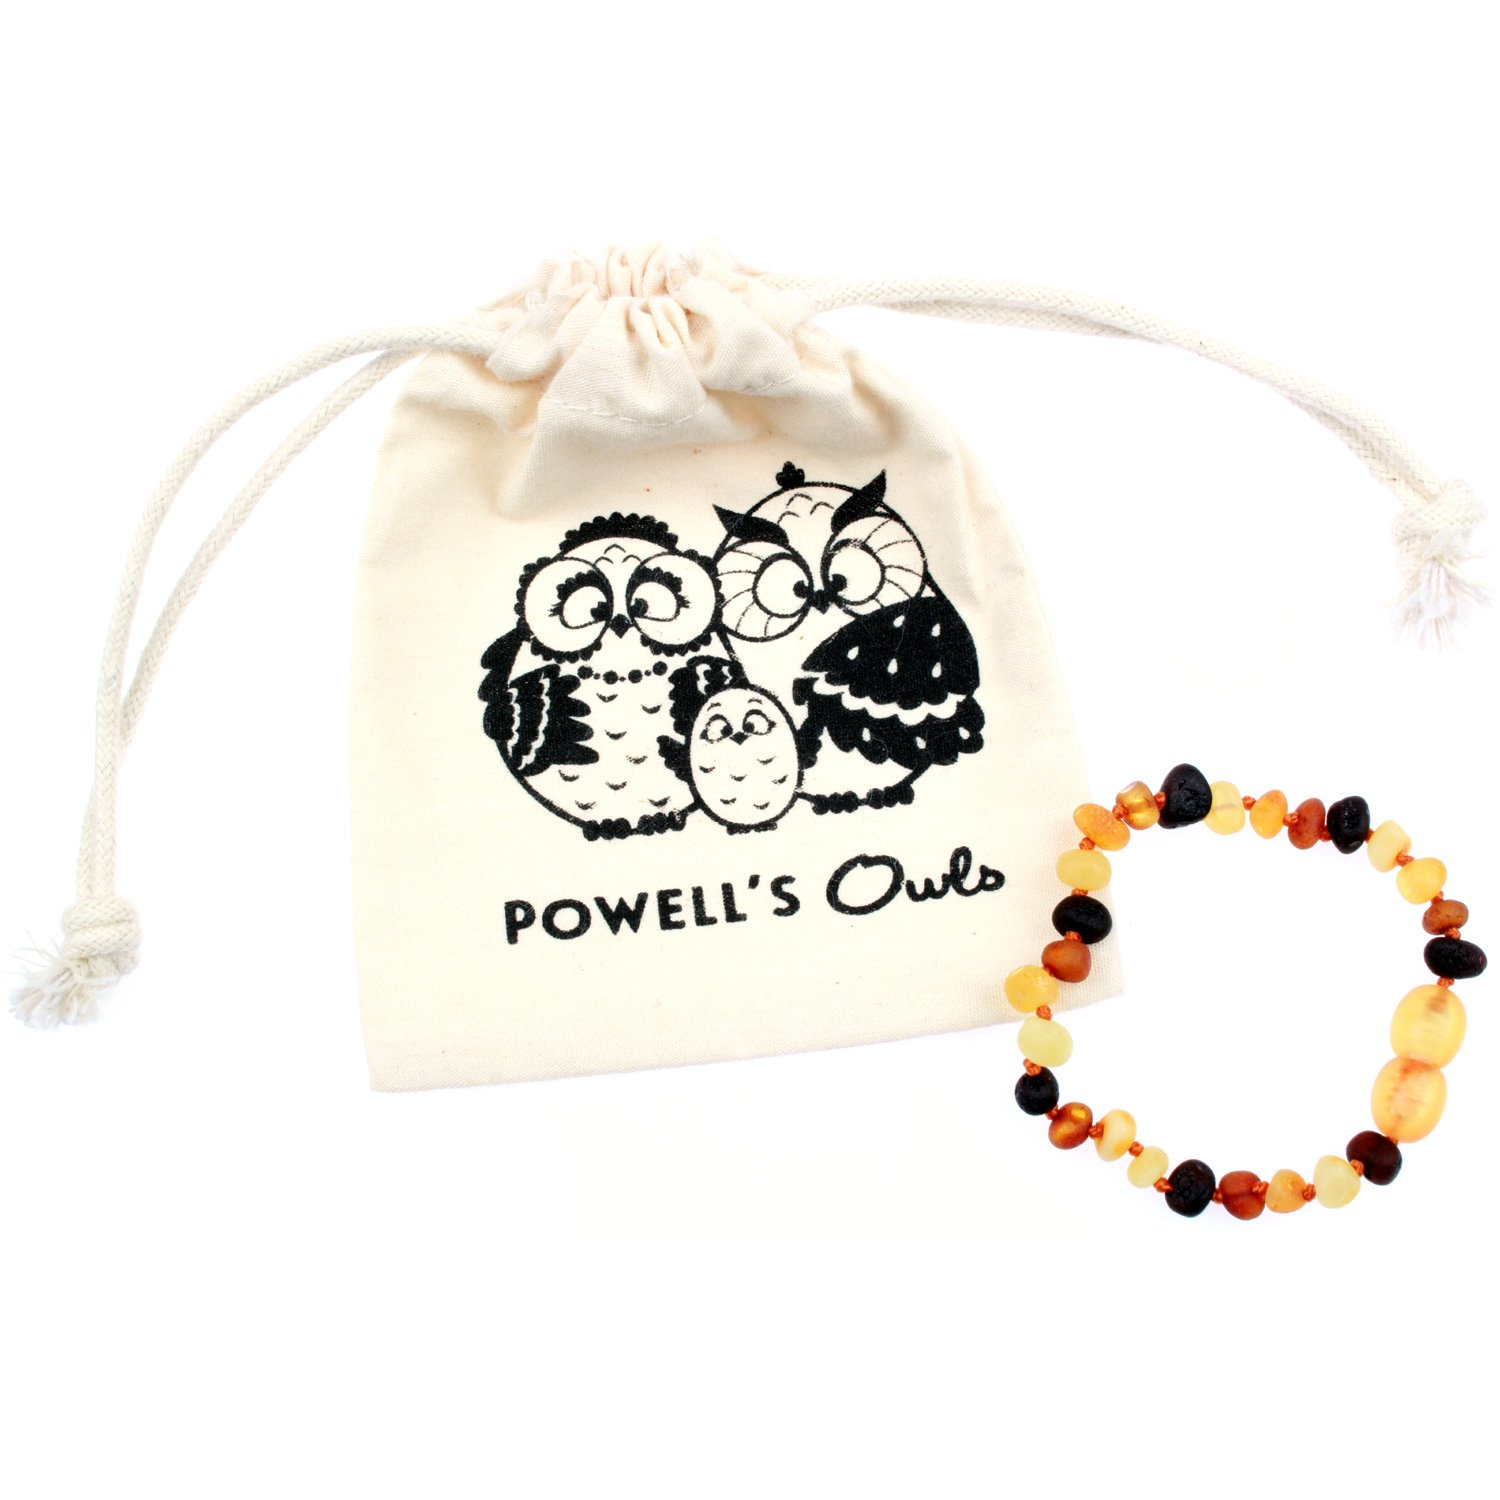 Baltic Amber Teething Bracelet / Teething Anklet For Babies, Toddlers & Kids (Unisex, Raw Unpolished Multicolor, 5.5) Lab-Tested, 100% Certified Natural Baltic Amber - Natural Teething Pain Relief 5.5) Lab-Tested Powell's Owls